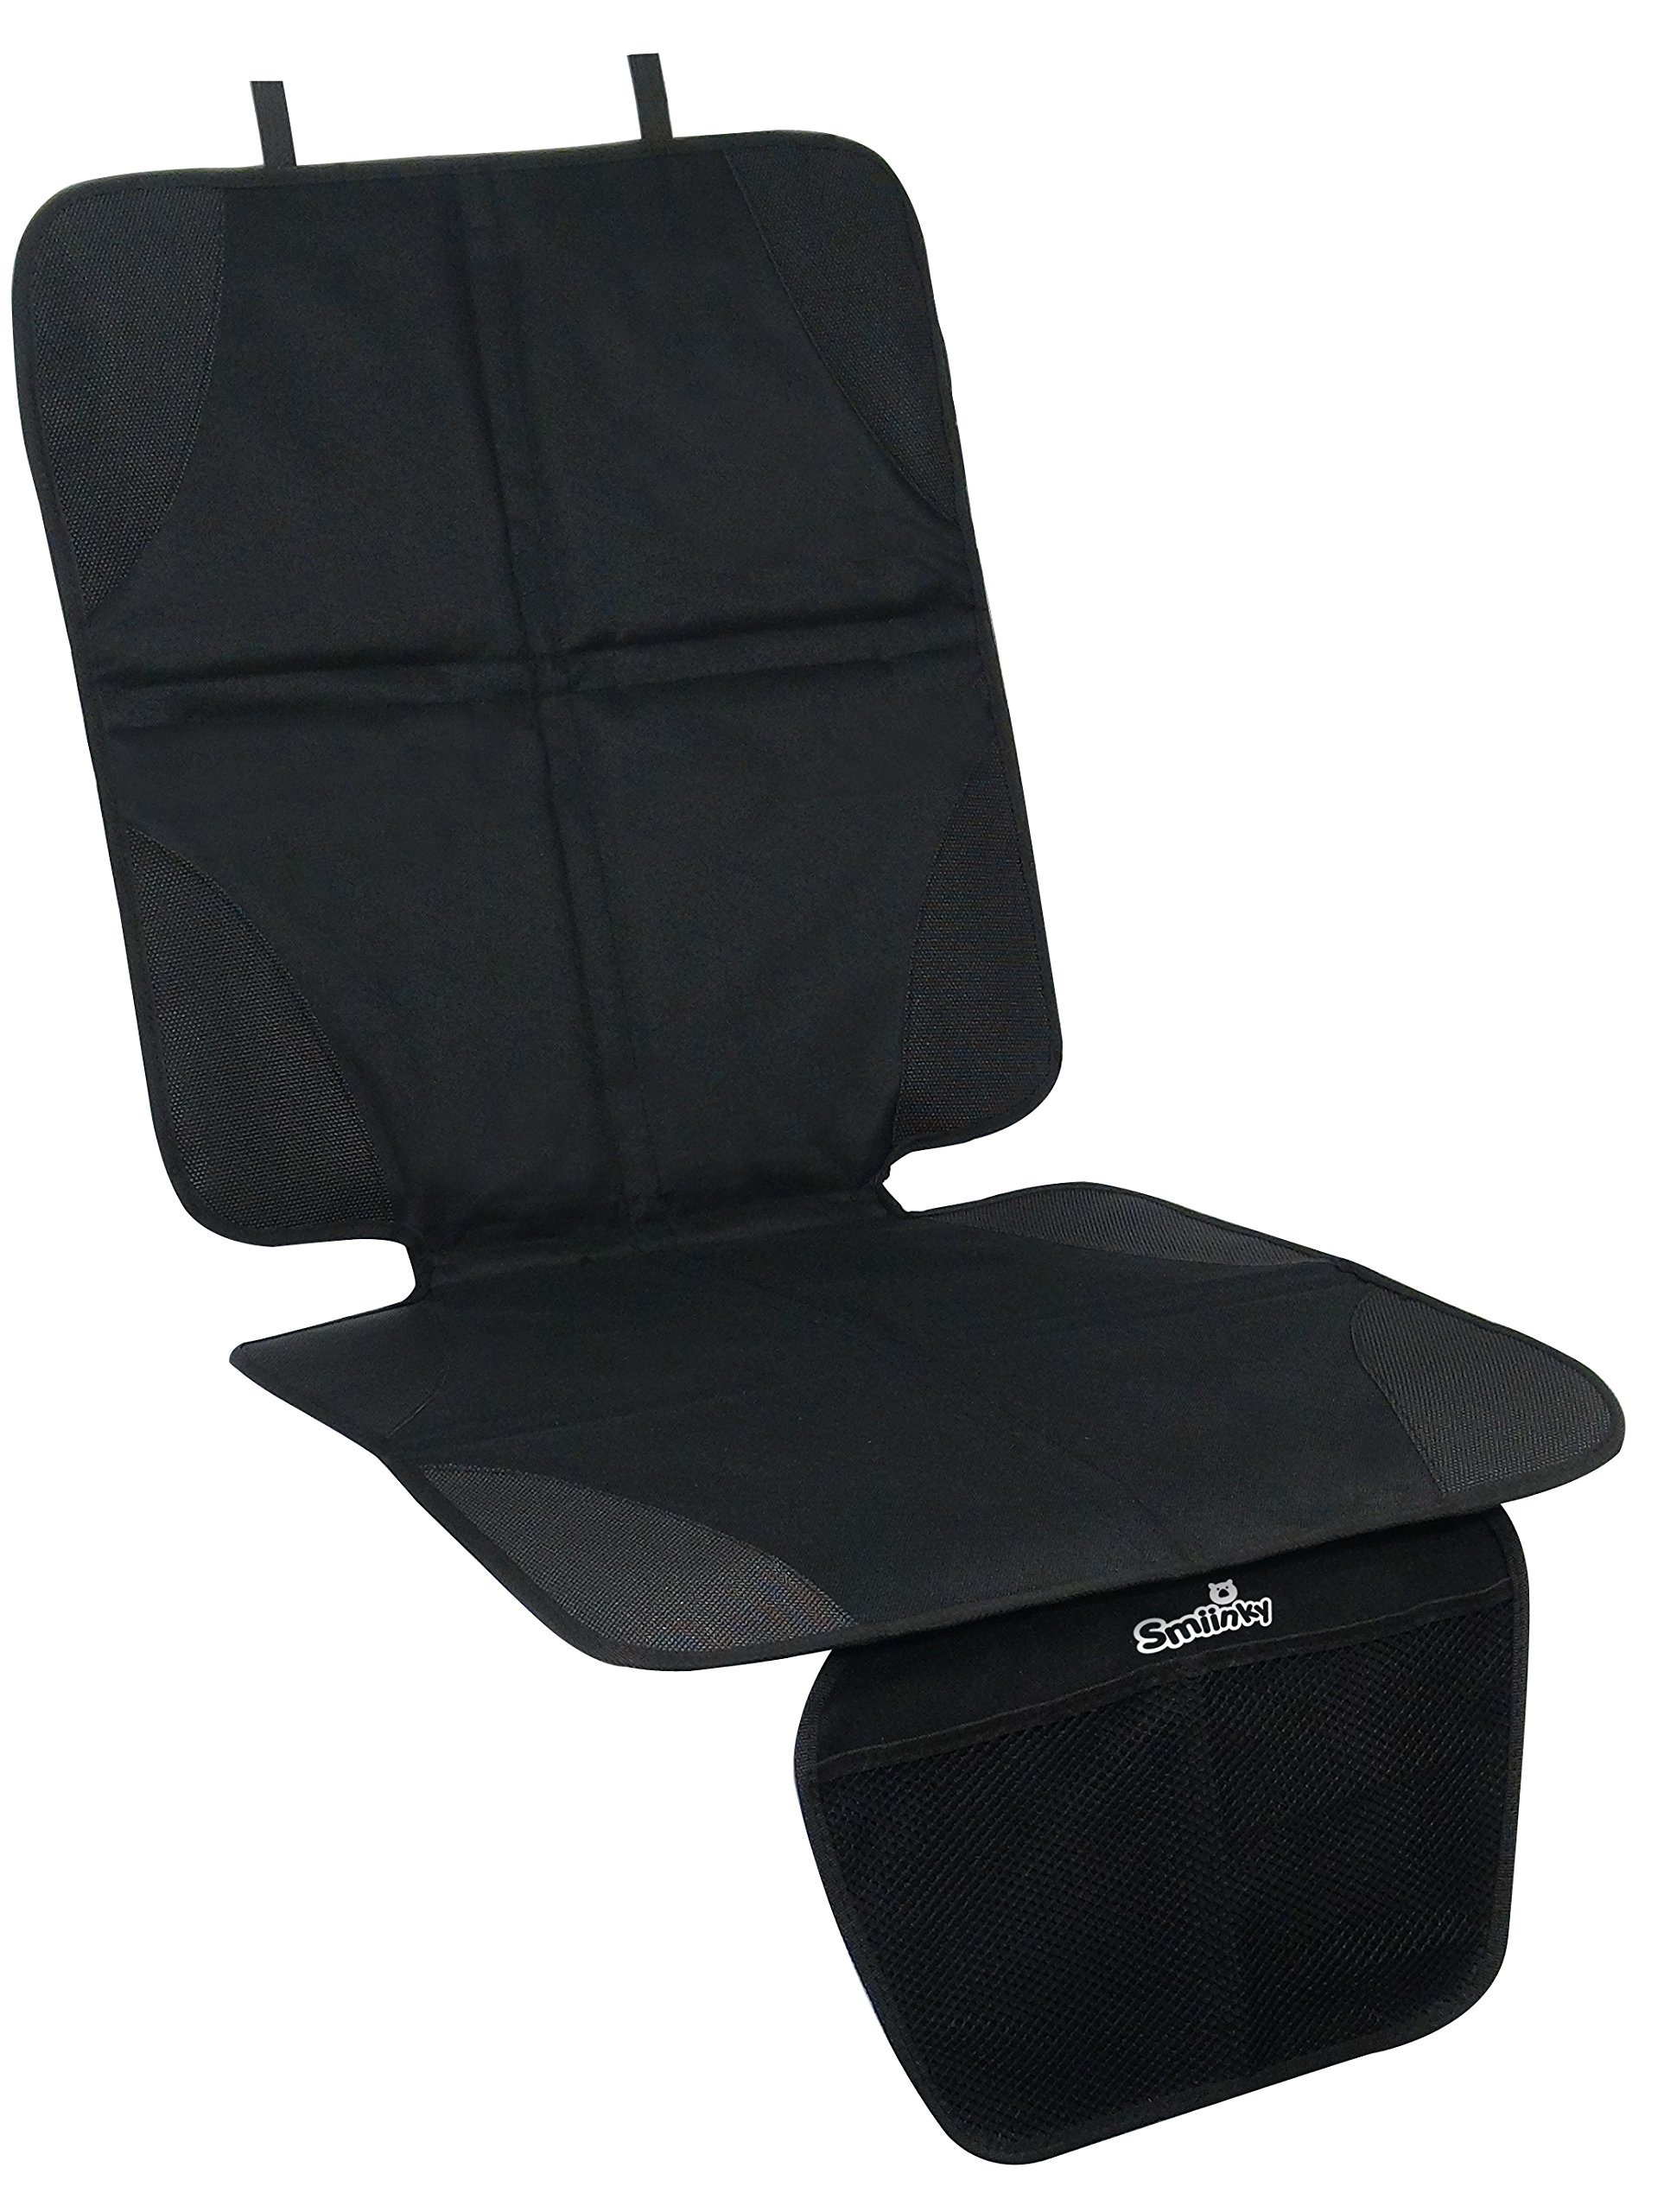 kick mats for your car premium backseat protector seat covers for your car suv. Black Bedroom Furniture Sets. Home Design Ideas